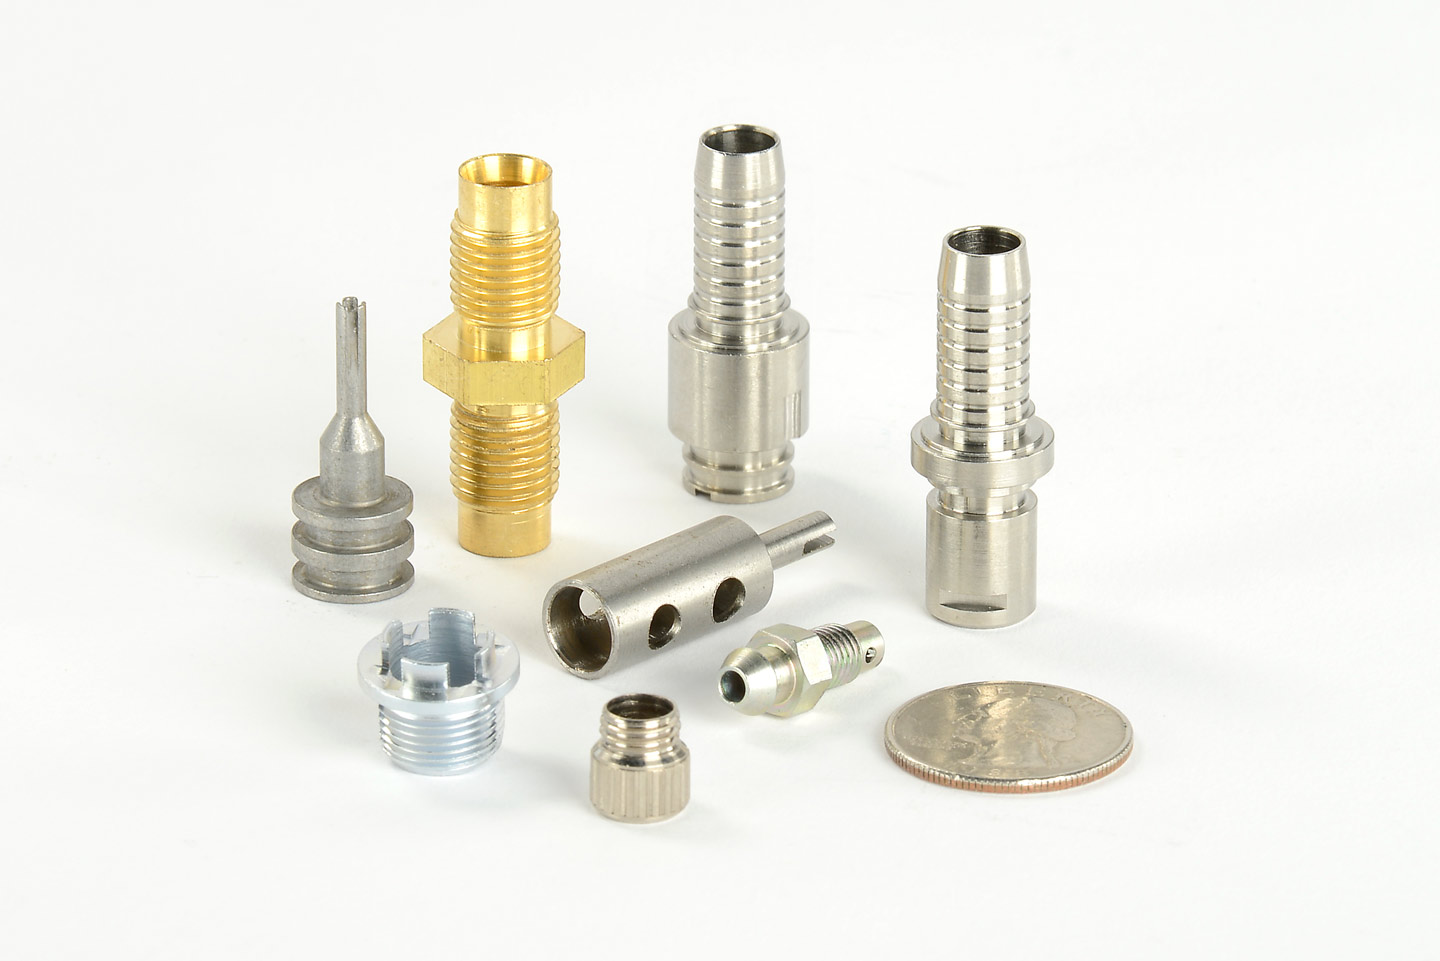 precision machined brass components